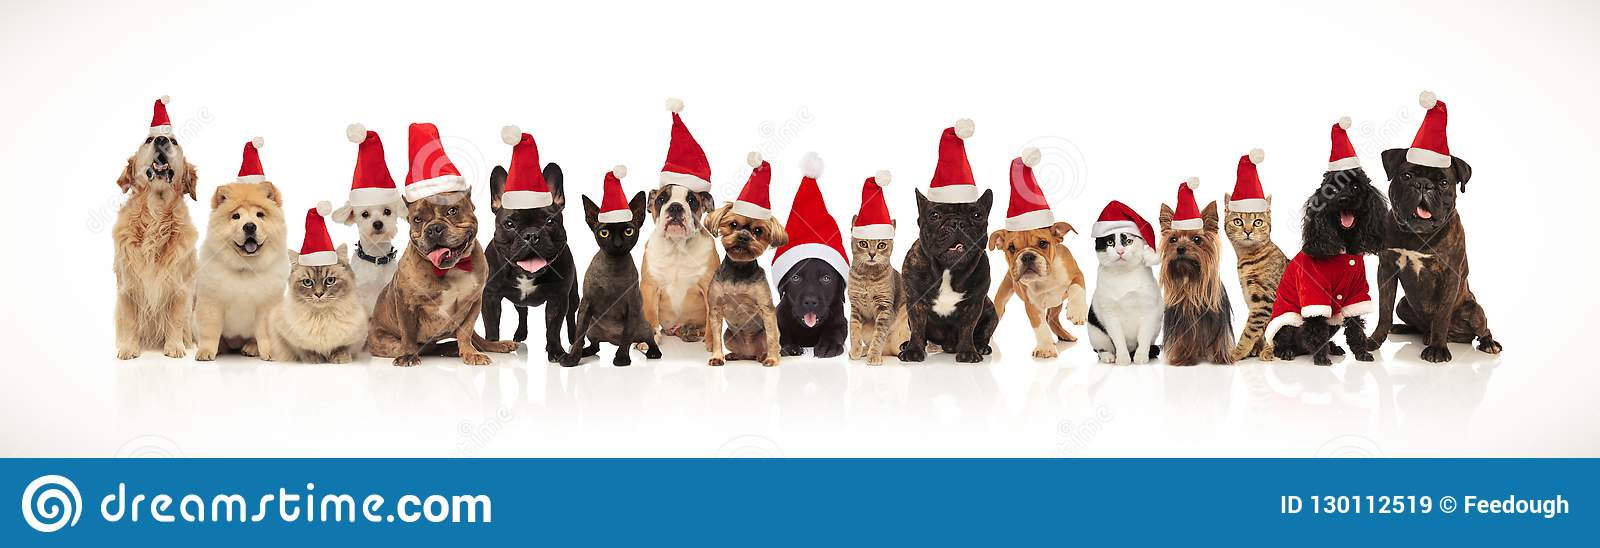 Large group of adorable cats and dogs with santa hats